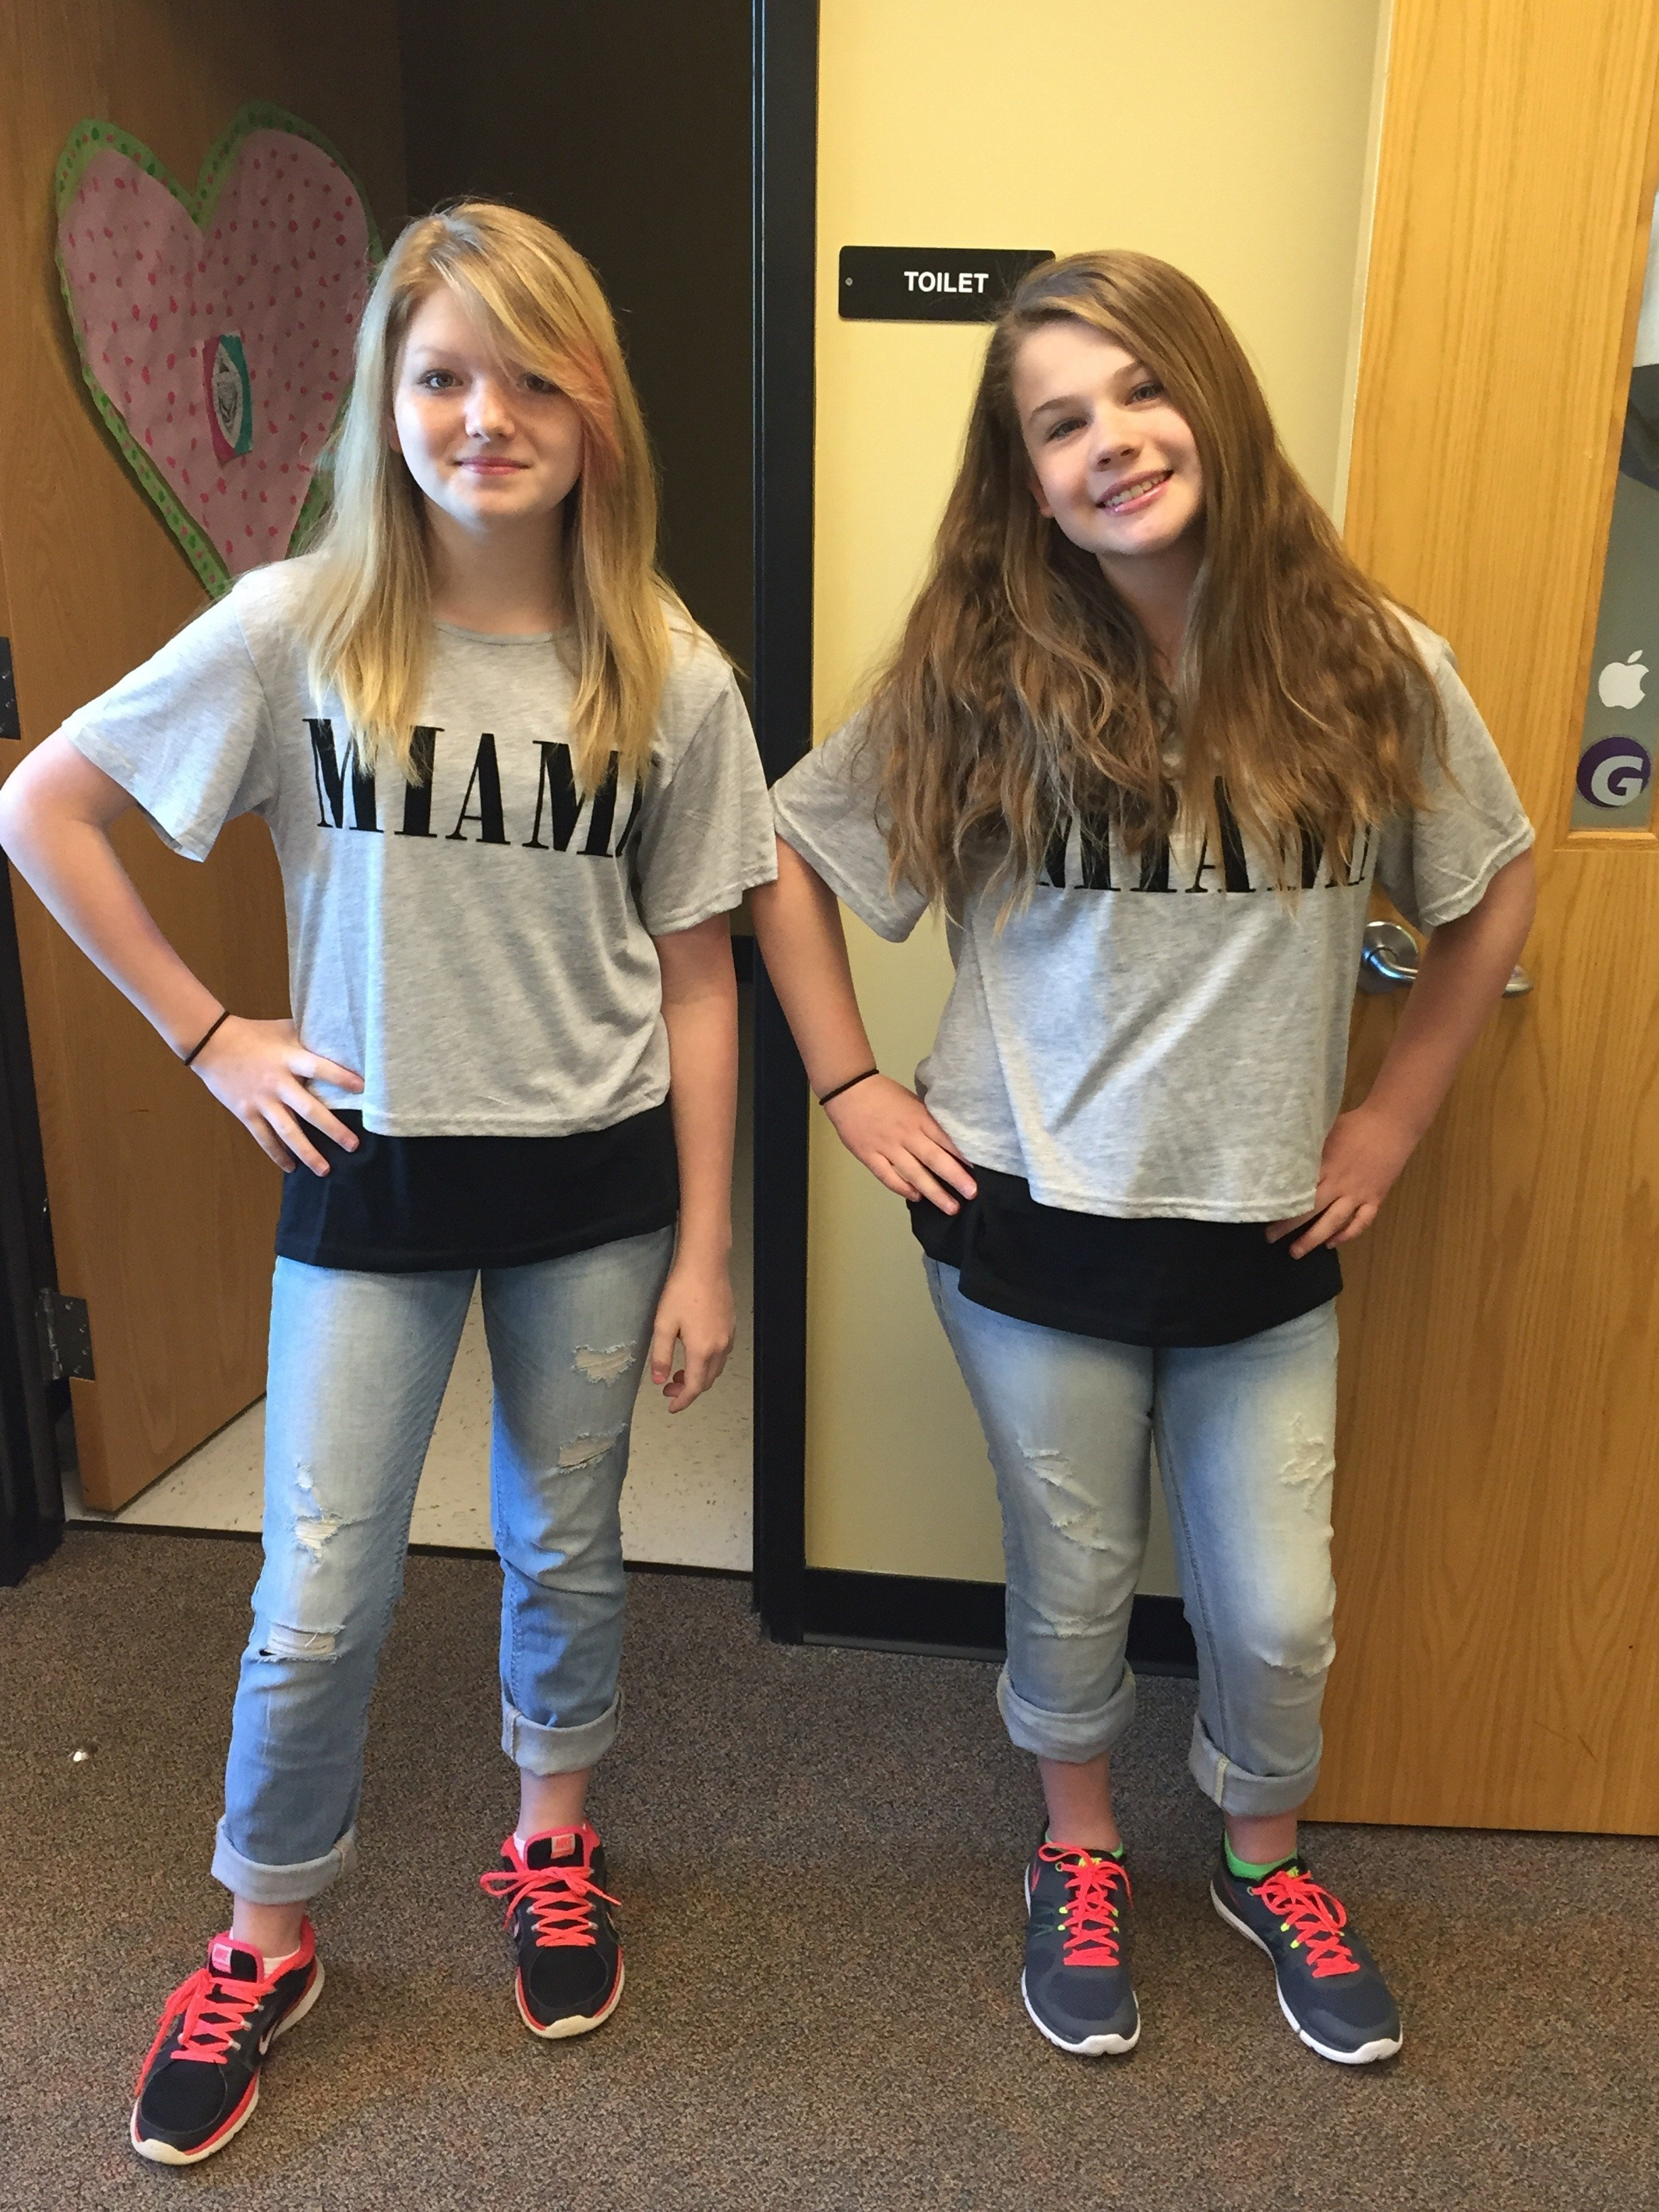 10 Most Popular Twin Ideas For Spirit Week sca sol spirit week reflecting with rucker 3 2020